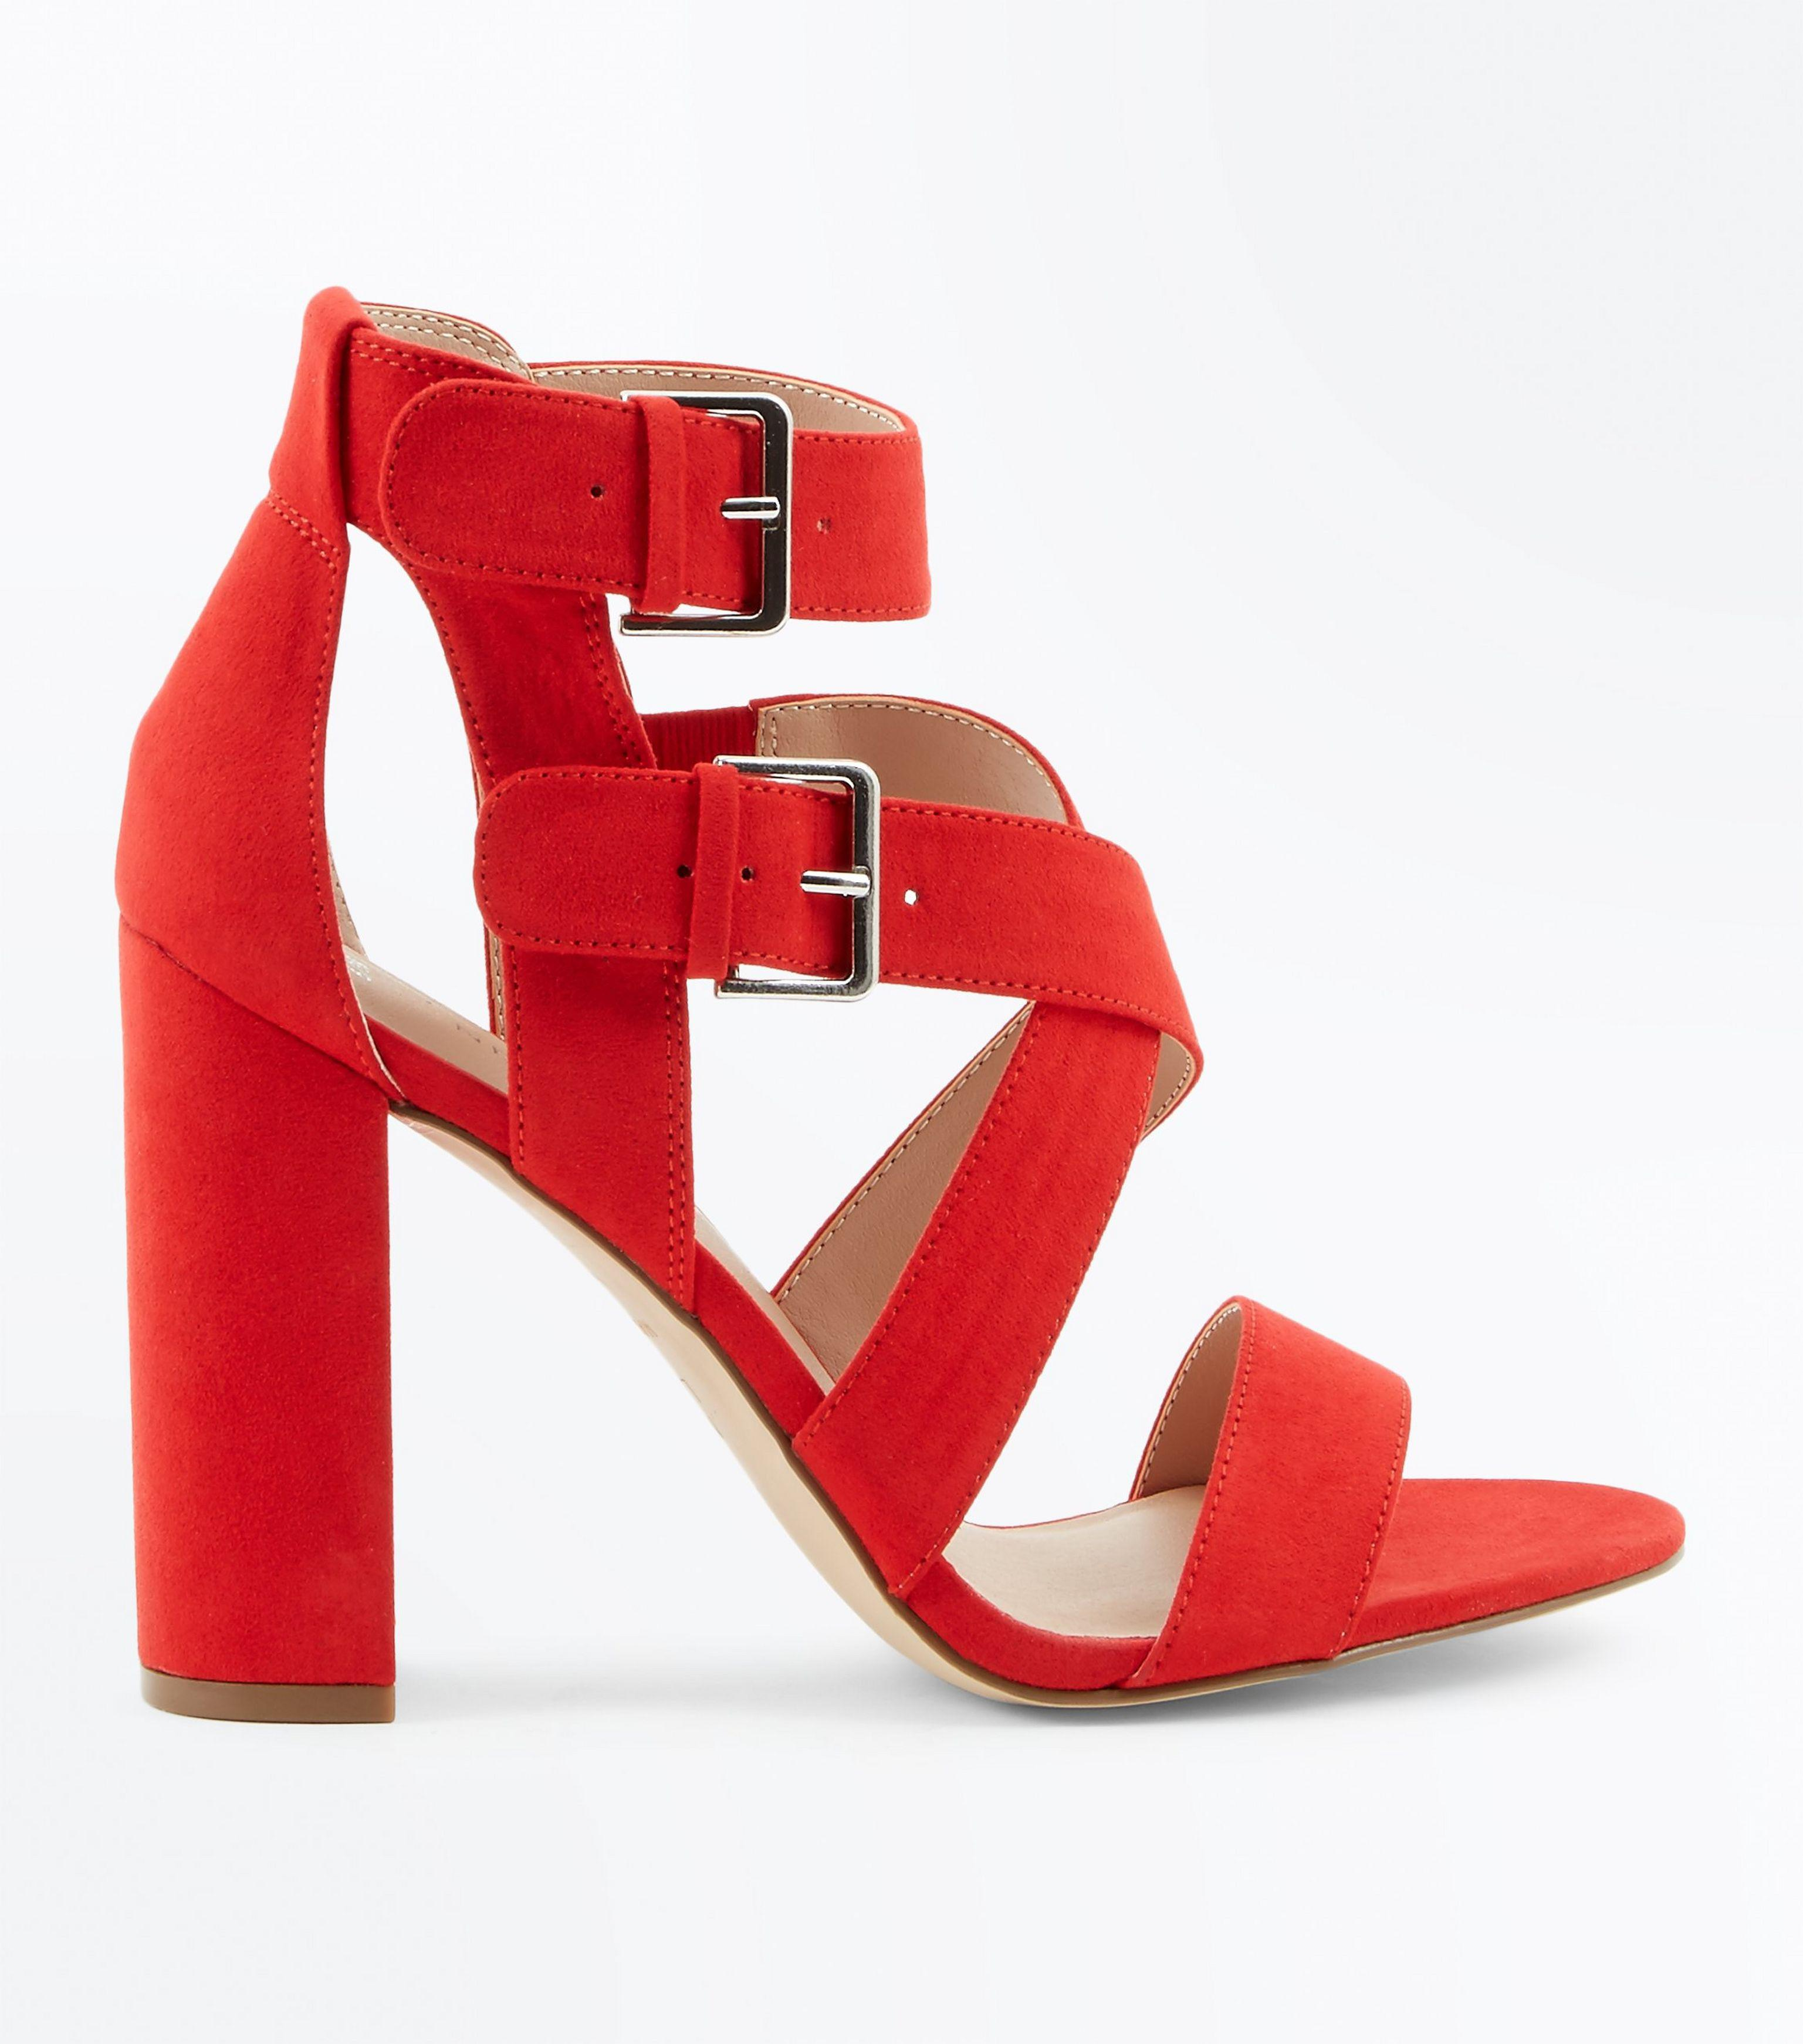 89f5e410a82 New Look Red Suedette Strappy Double Buckle Block Heels in Red - Lyst